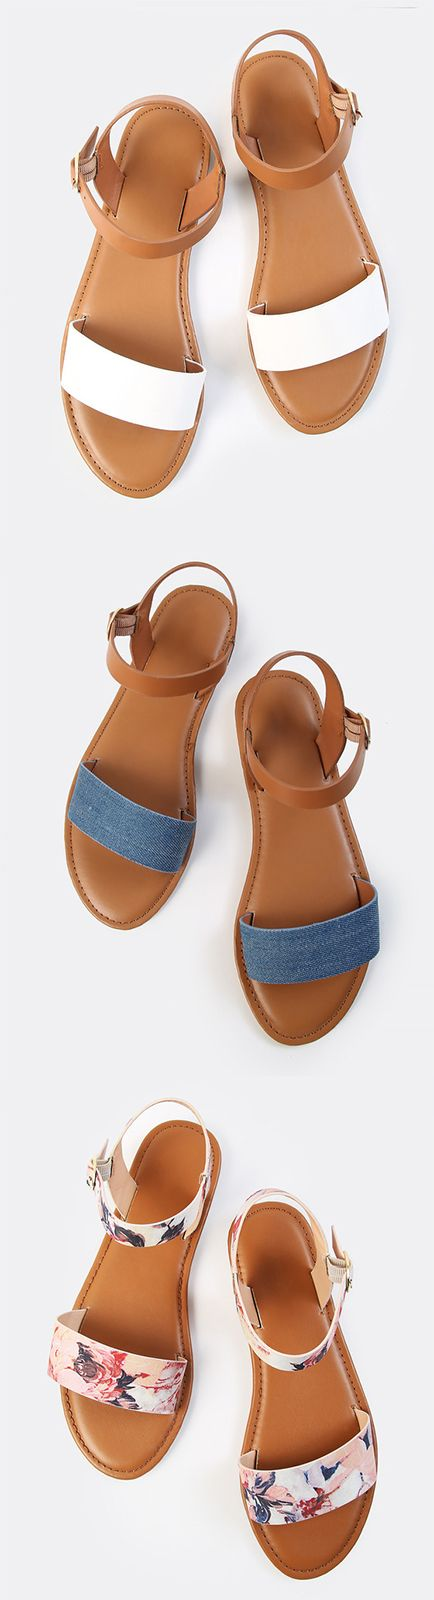 Get festival ready in the Single Band Ankle Sandals. Features a one band ankle strap design with a colorblock look and side buckle closure. Finished with a flat sole. Team it with a white swing dress and brown harness for extra fashion measures.